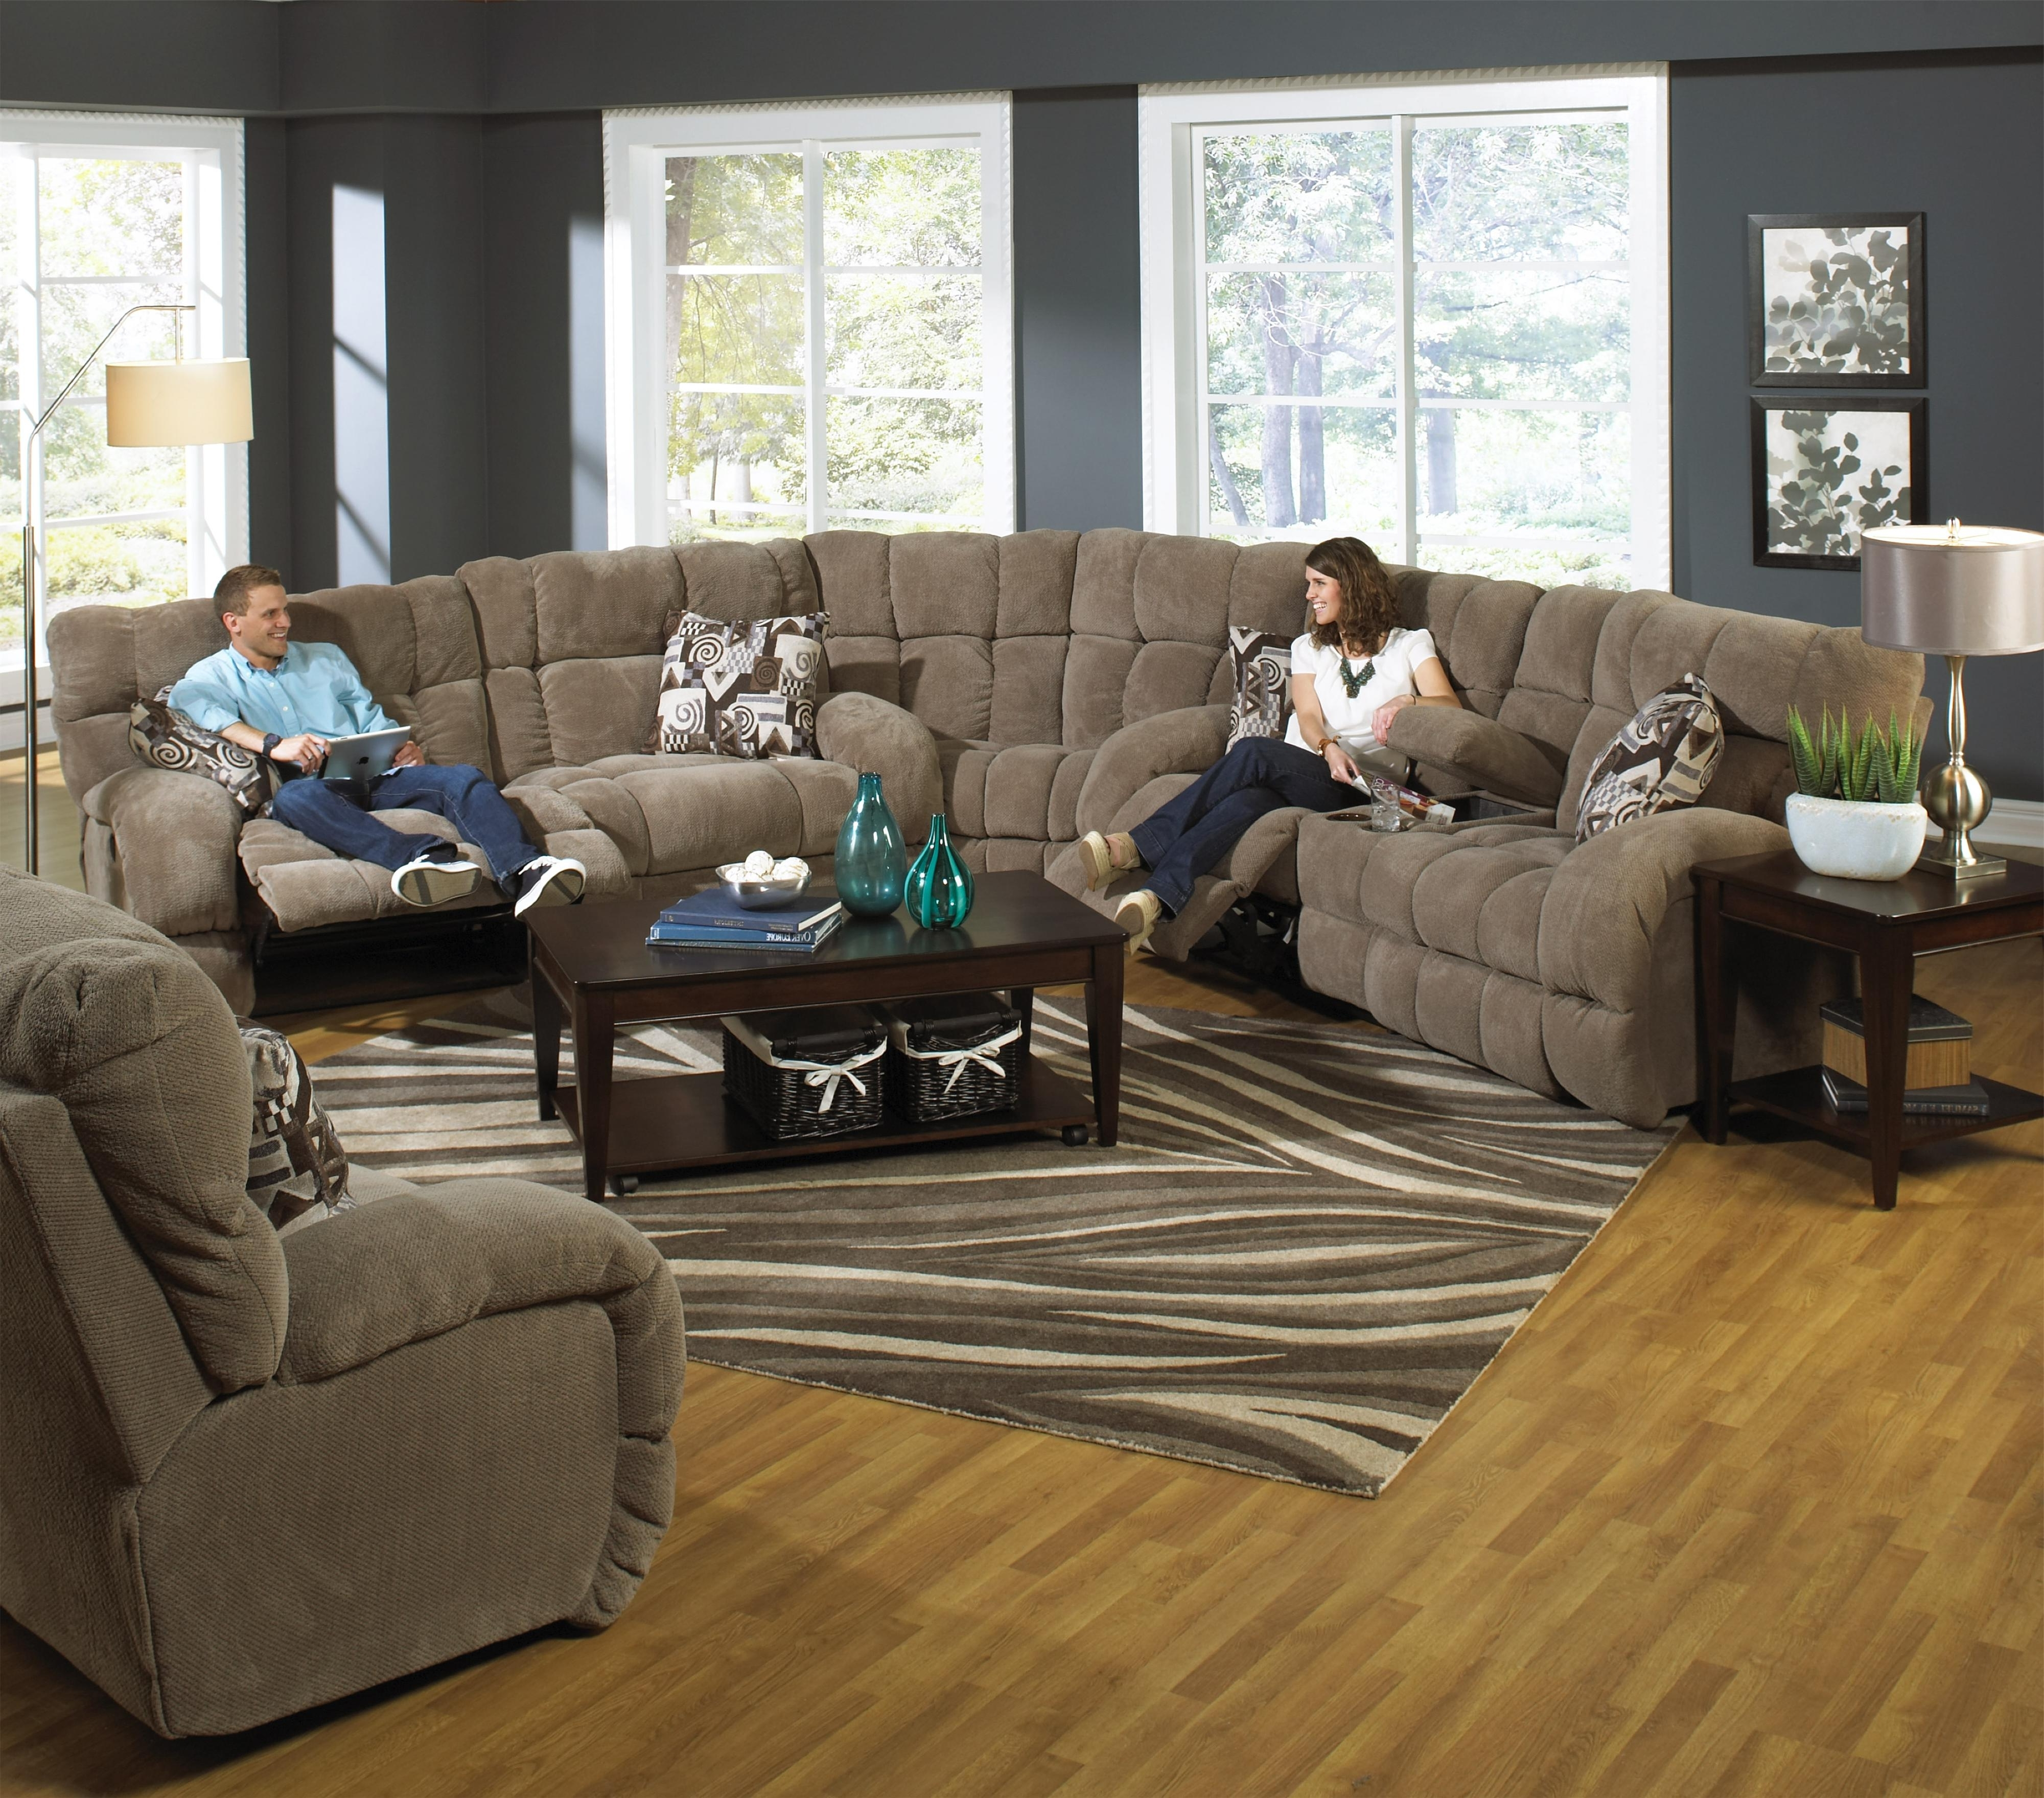 Favorite Power Reclining Sectional Sofa With Cup Holderscatnapper With Regard To Sectional Sofas With Cup Holders (View 4 of 15)